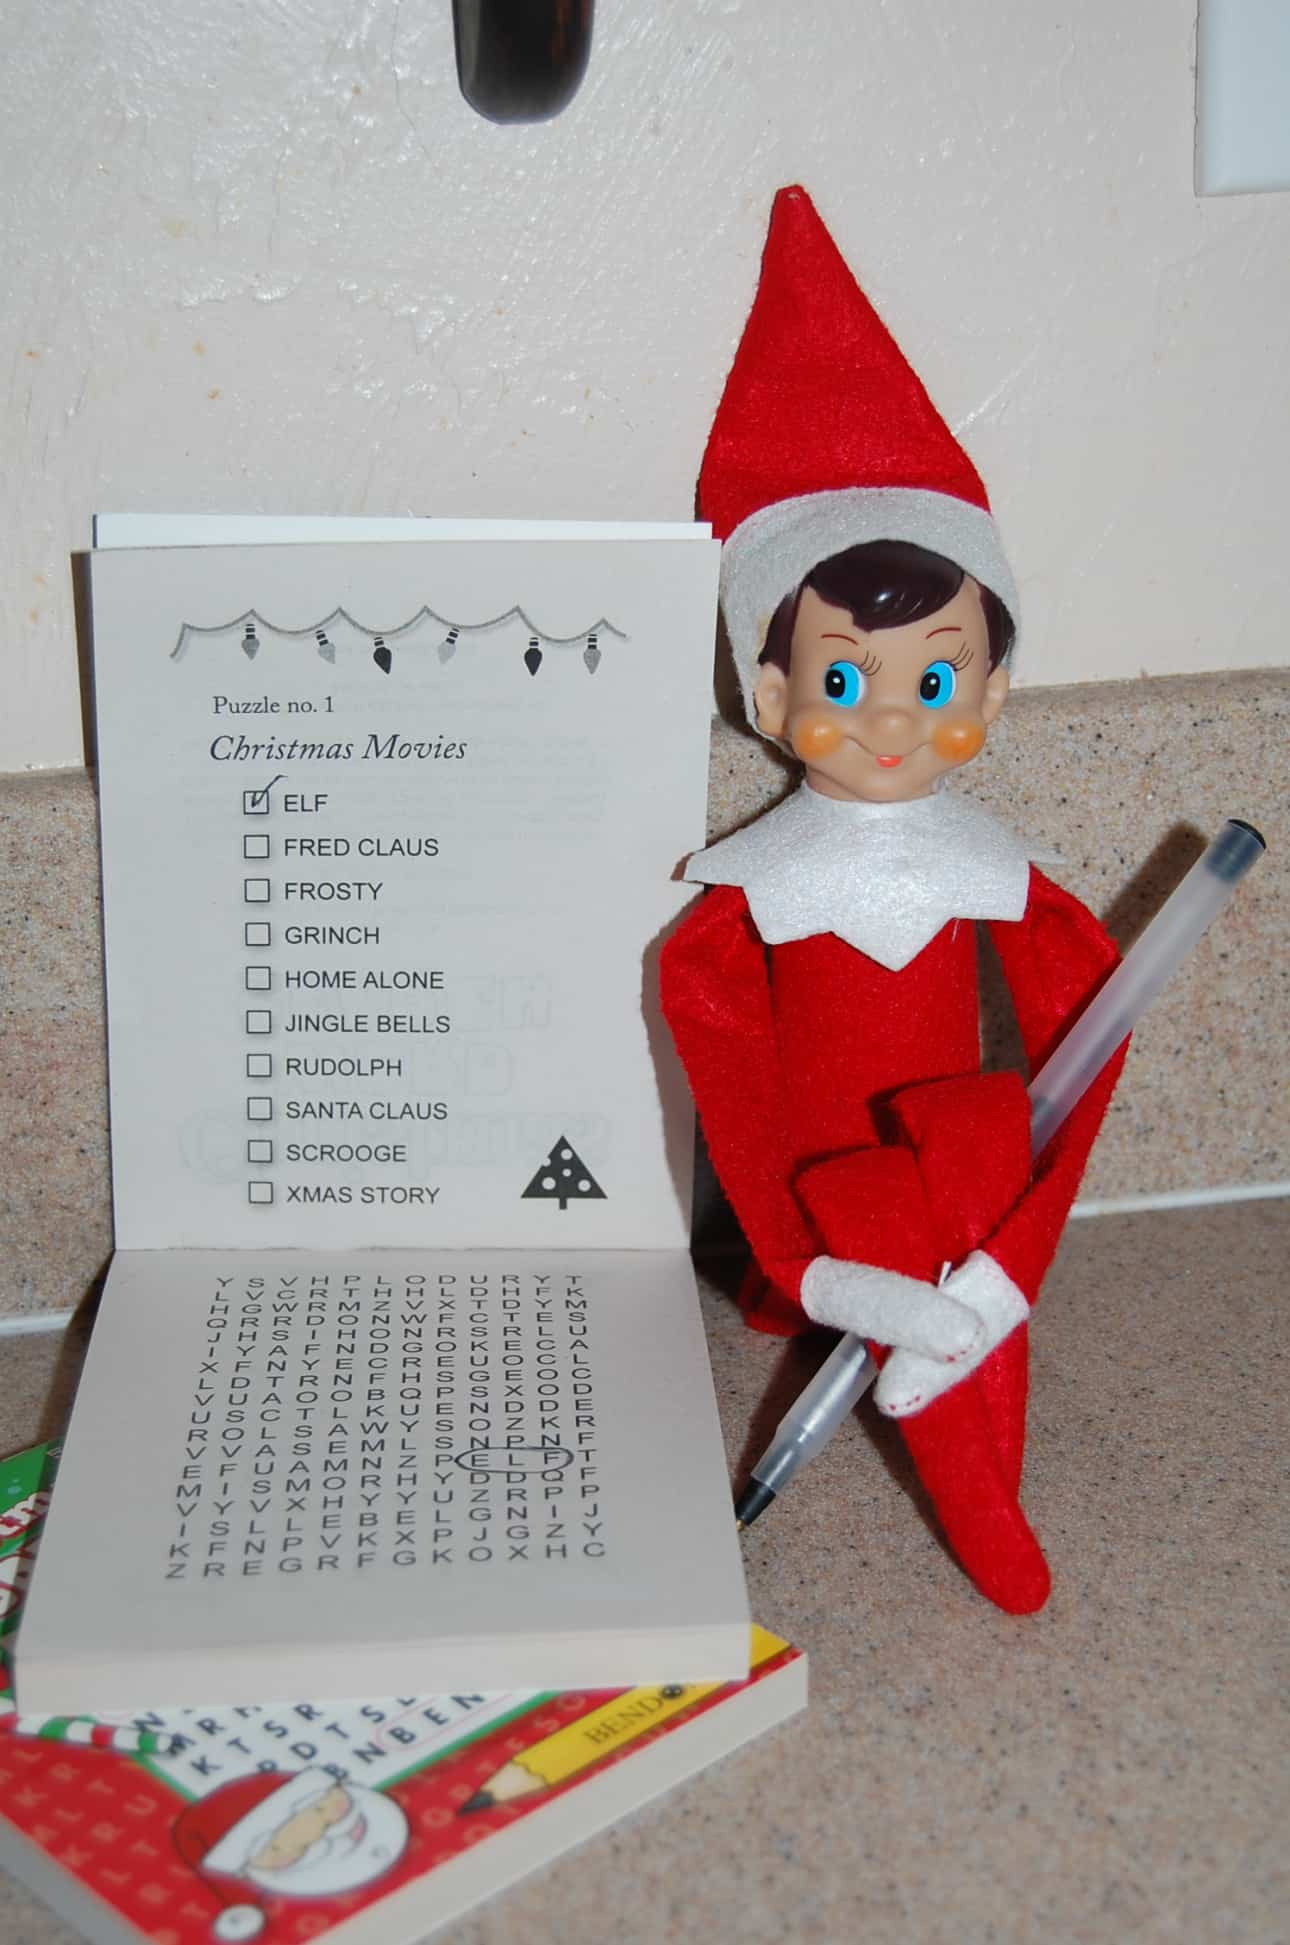 91. Elfie and the Christmas Crossword Puzzle